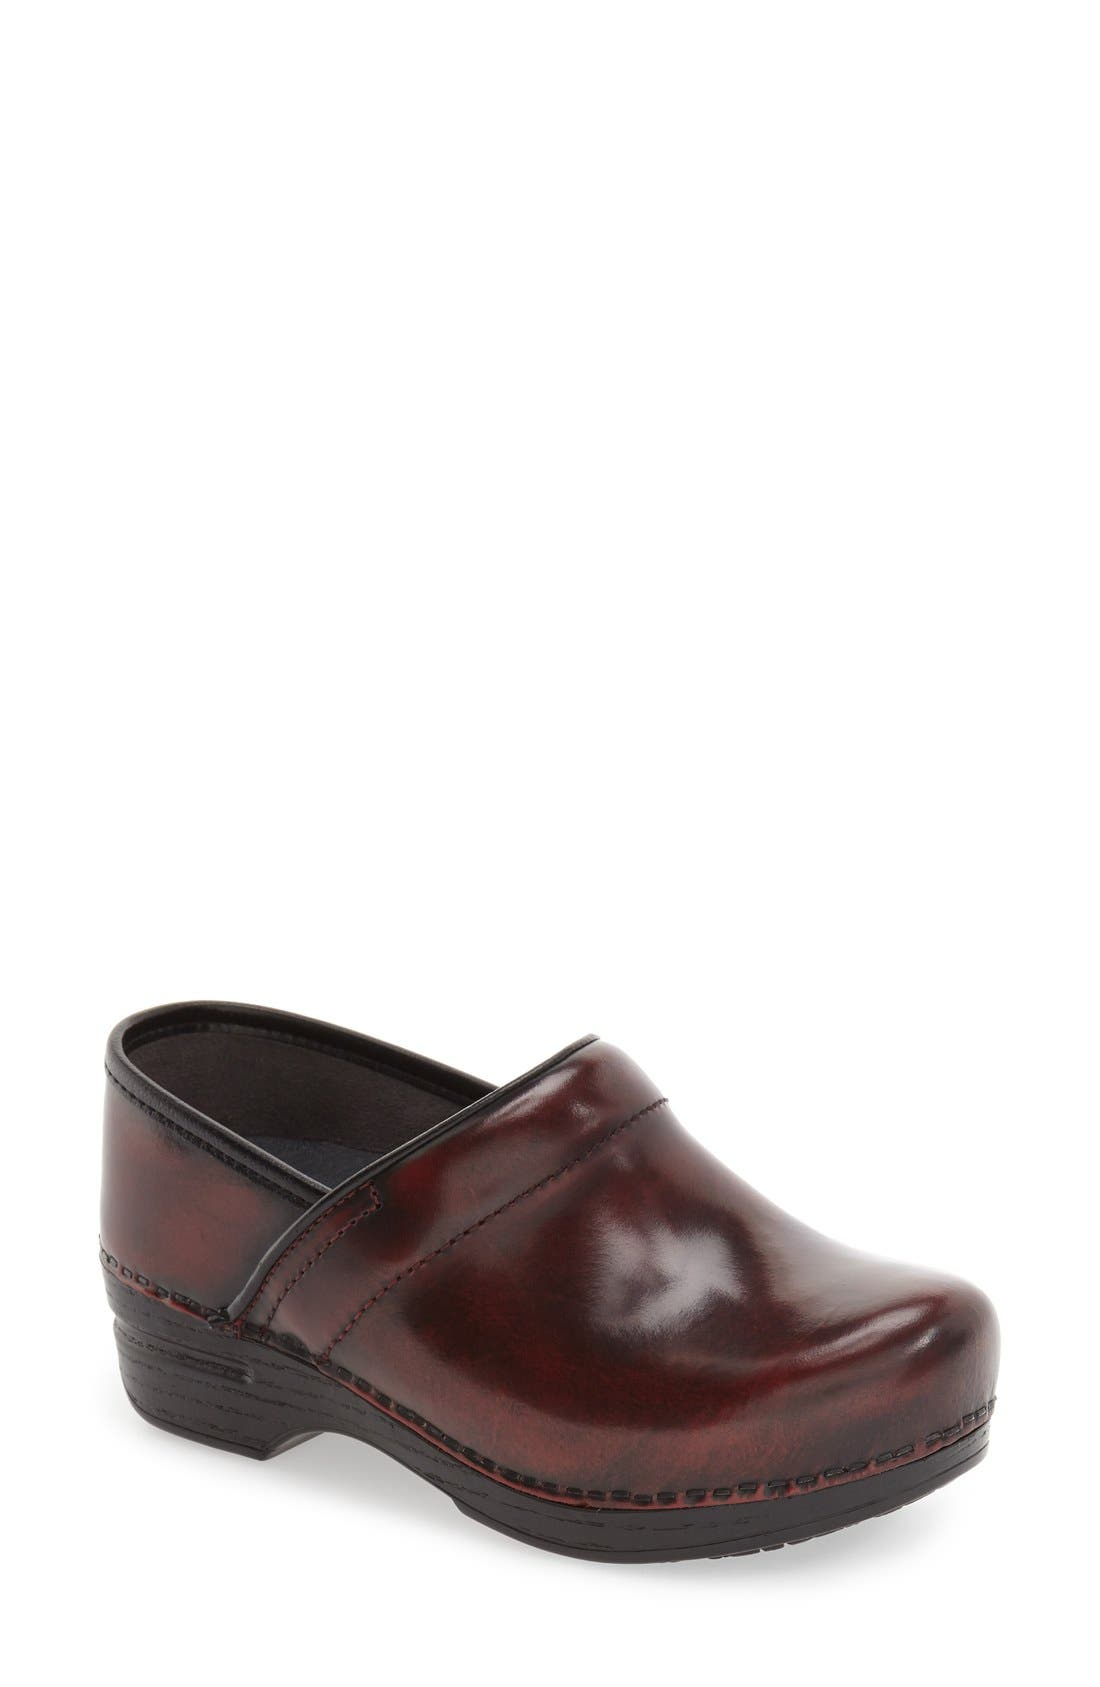 'Pro XP' Patent Leather Clog,                         Main,                         color, Burgundy Cabrio Patent Leather